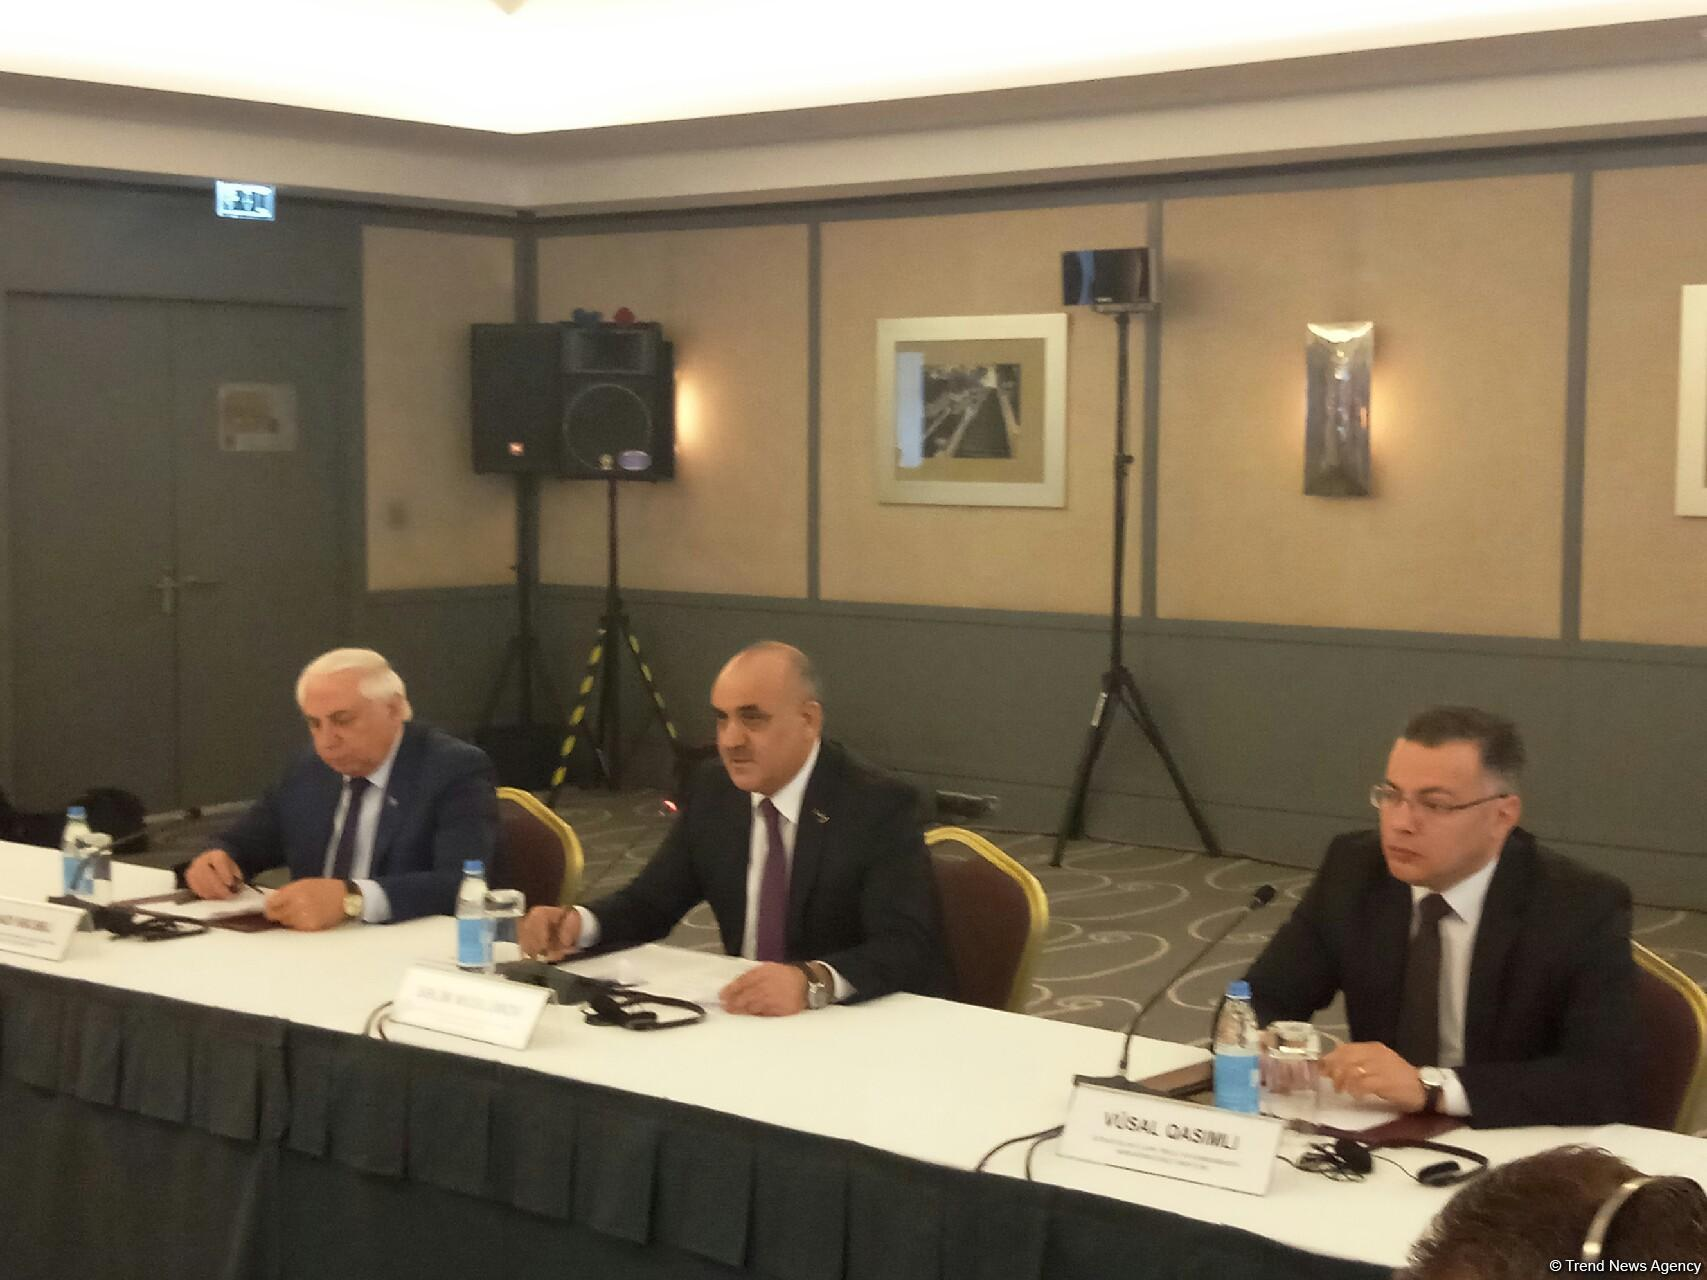 Azerbaijan's population to reach 10 million by 2019 – minister